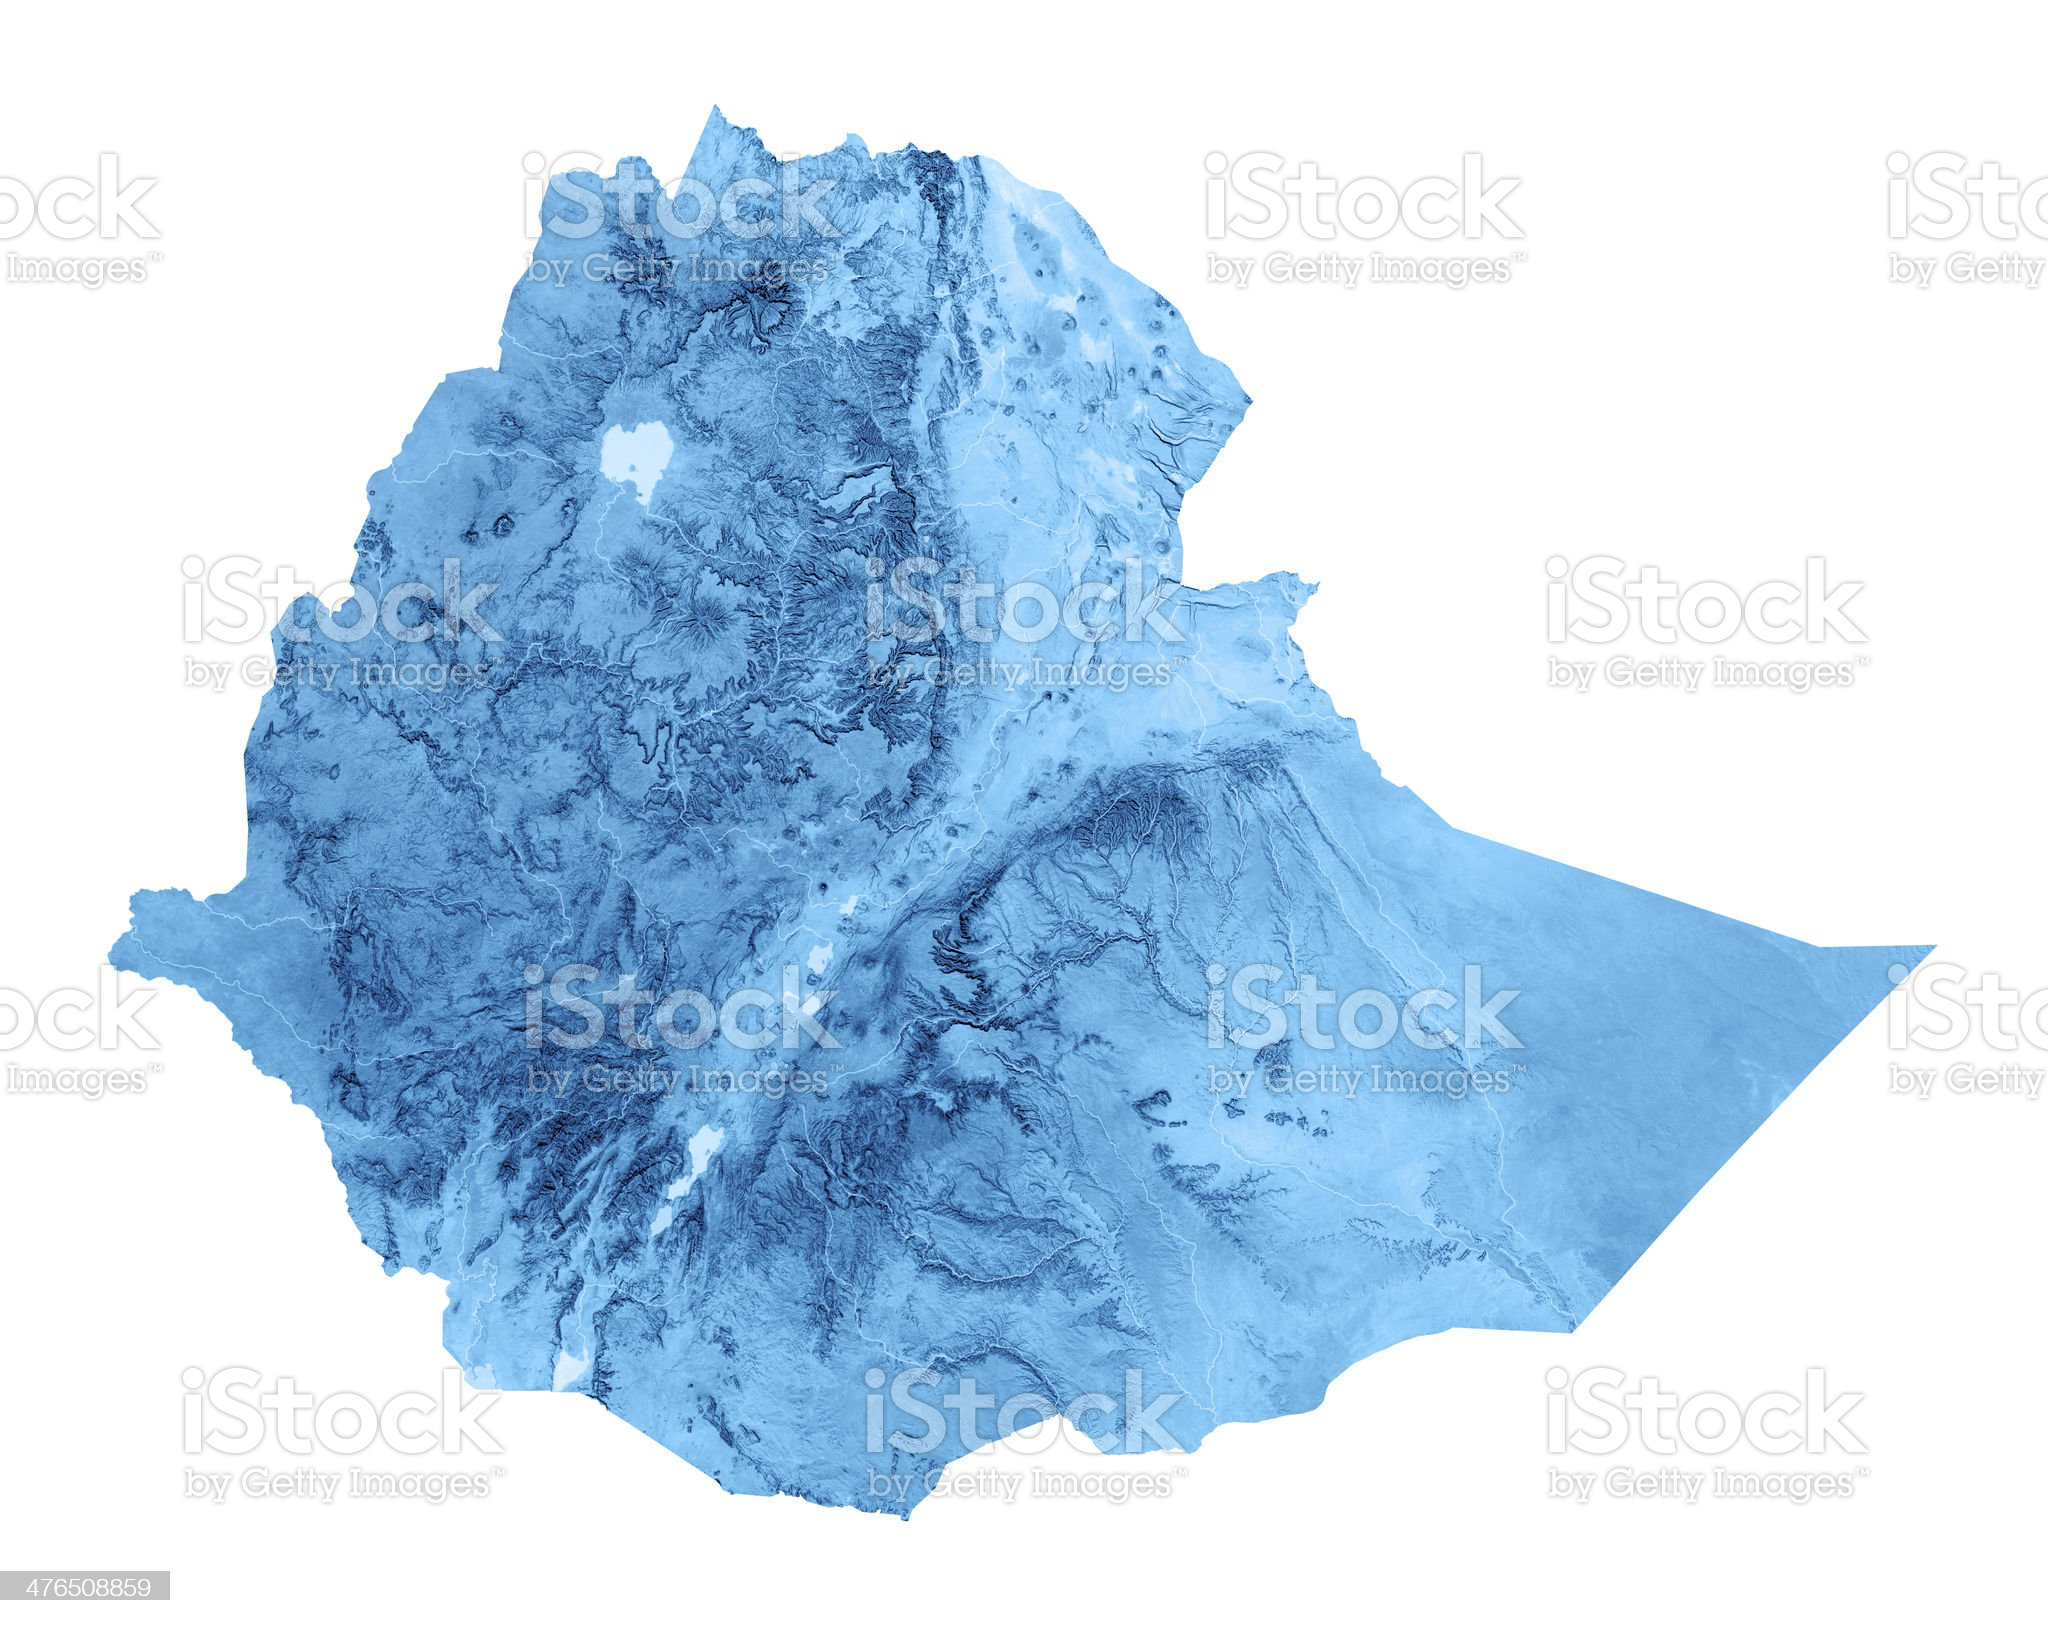 Ethiopia Topographic Map Isolated royalty-free stock photo